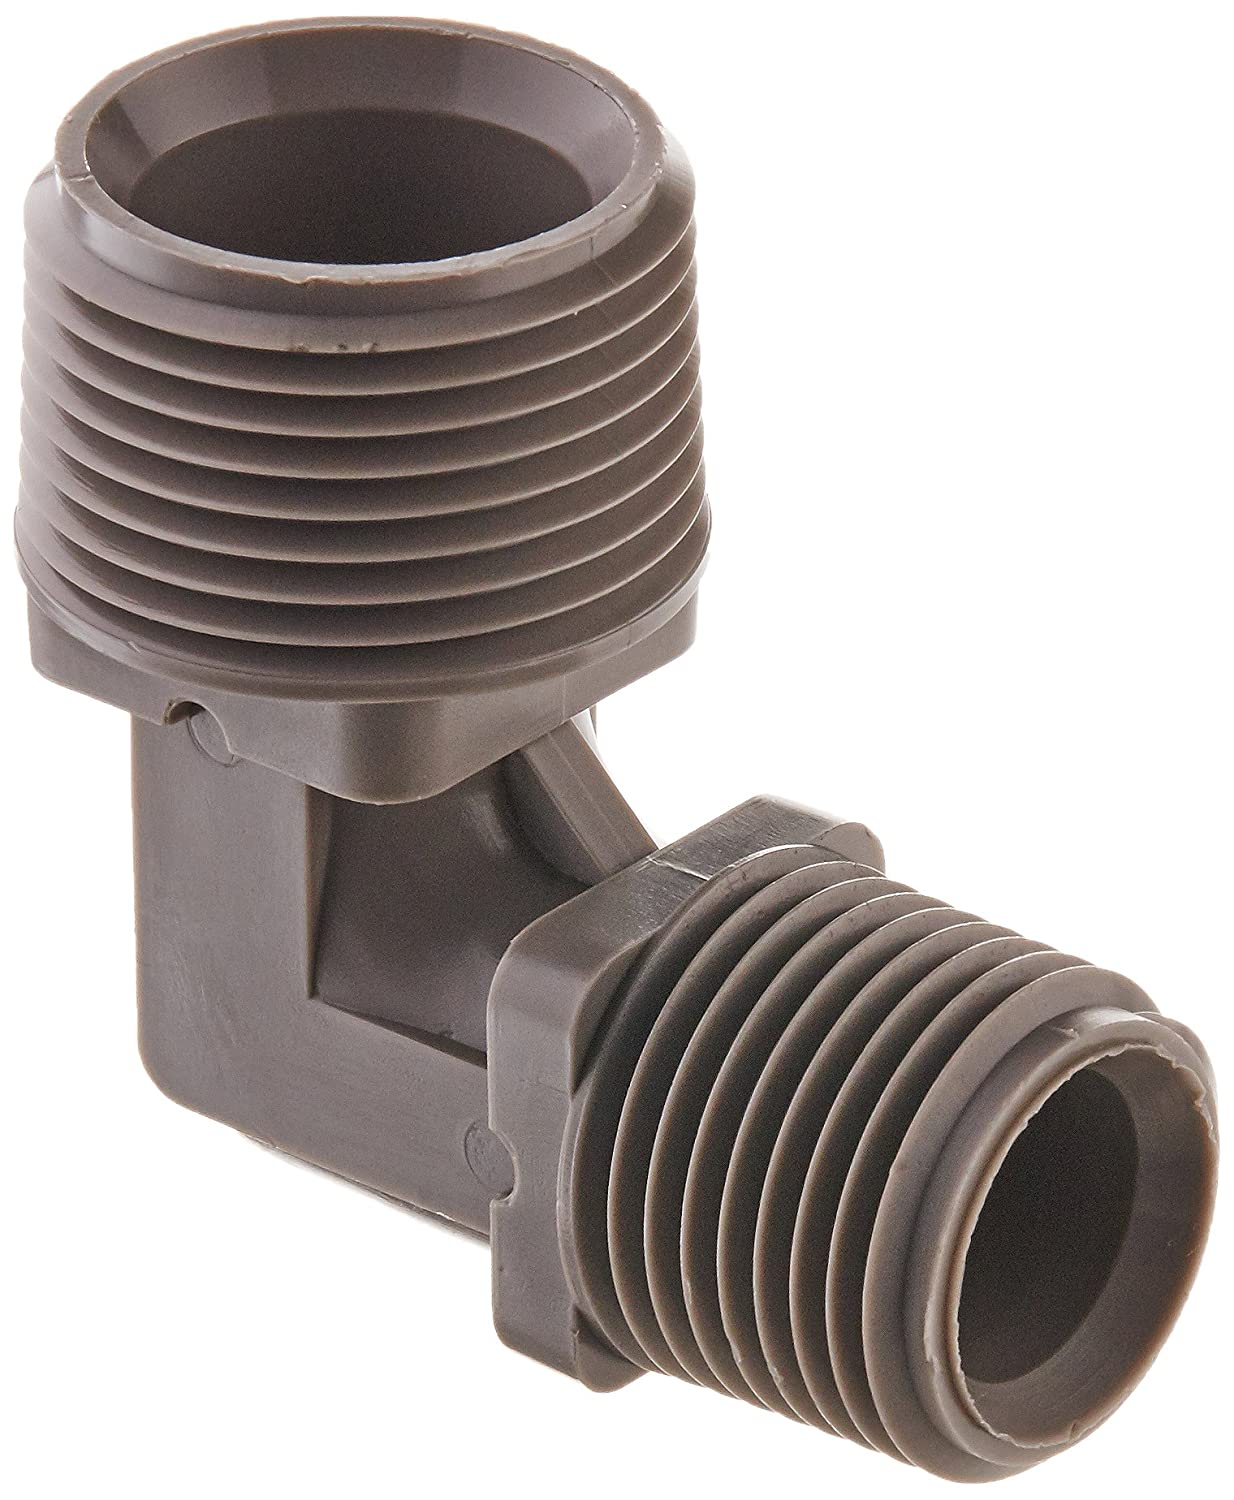 LaSalle Bristol 64QE43T 3/4' x 1/2' Male Pipe Thread Qest Elbow Fitting